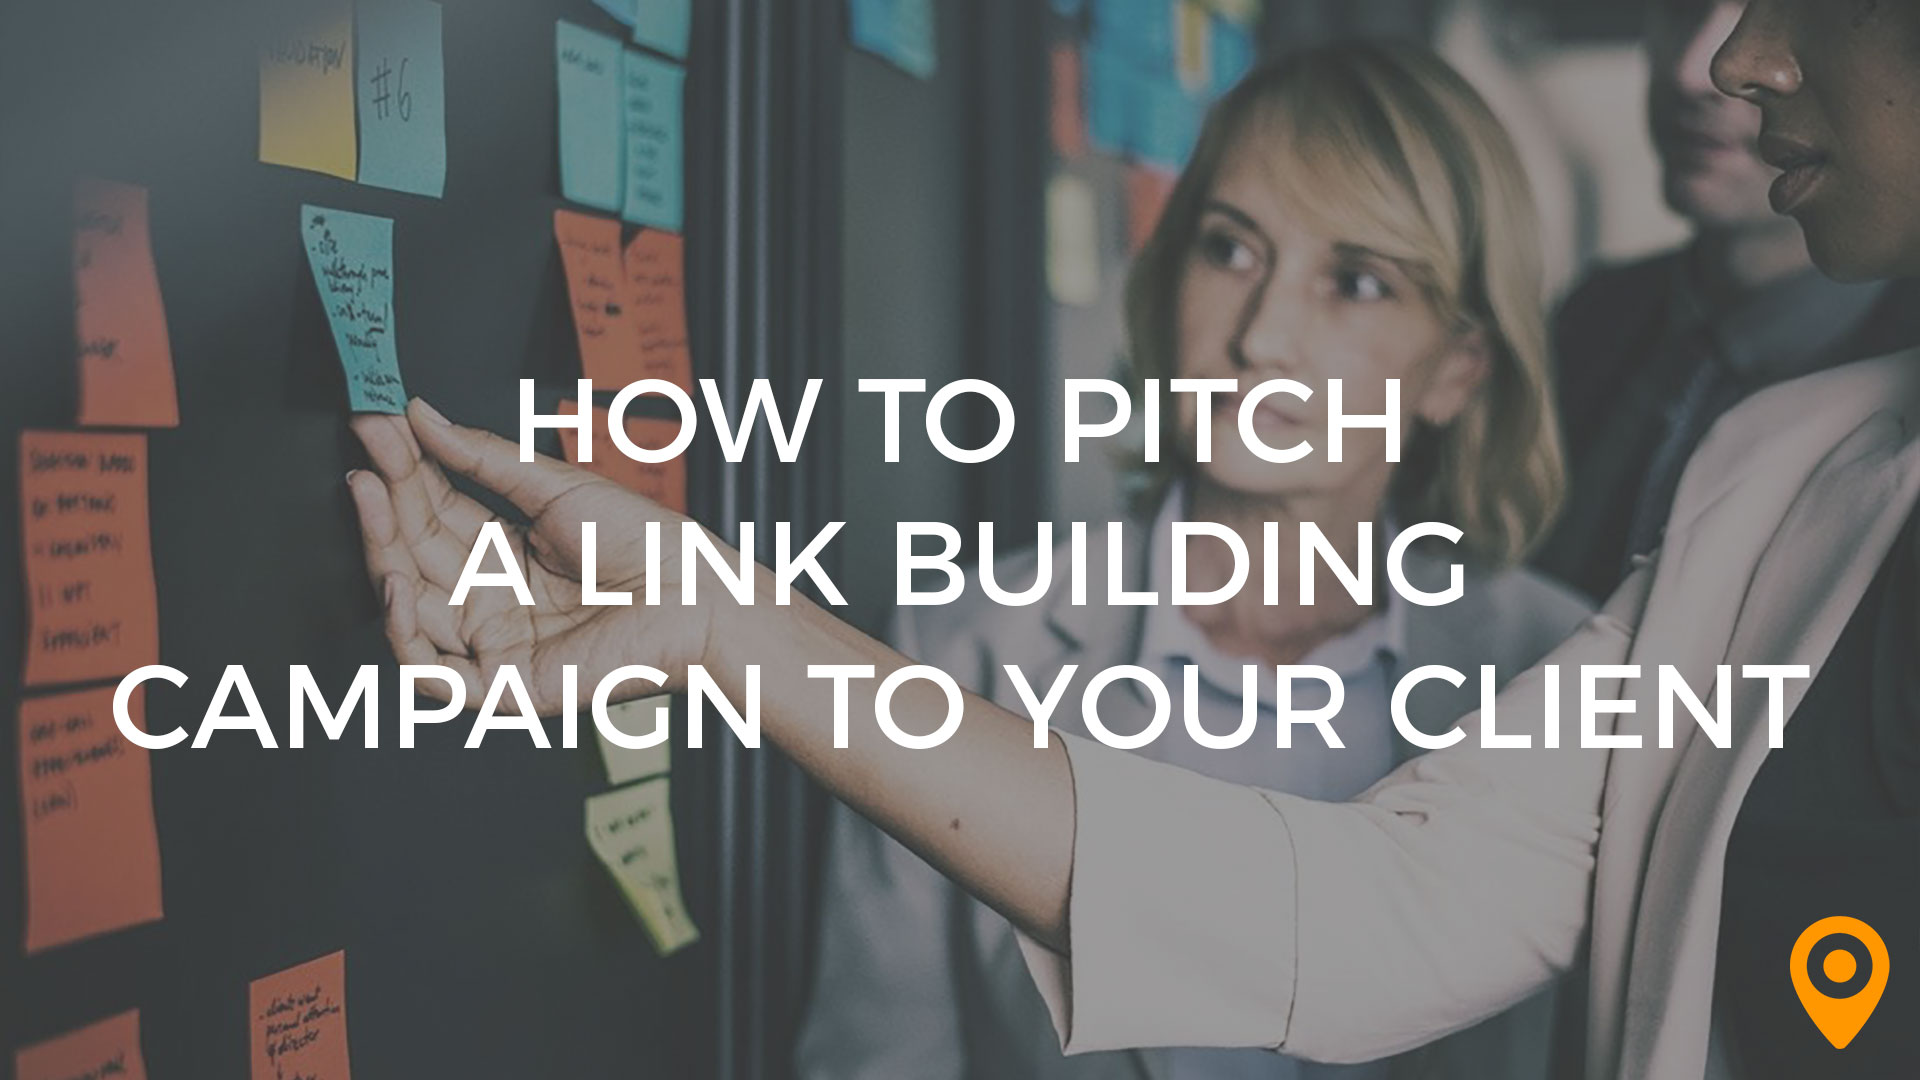 How to Pitch a Link Building Campaign to Your Client